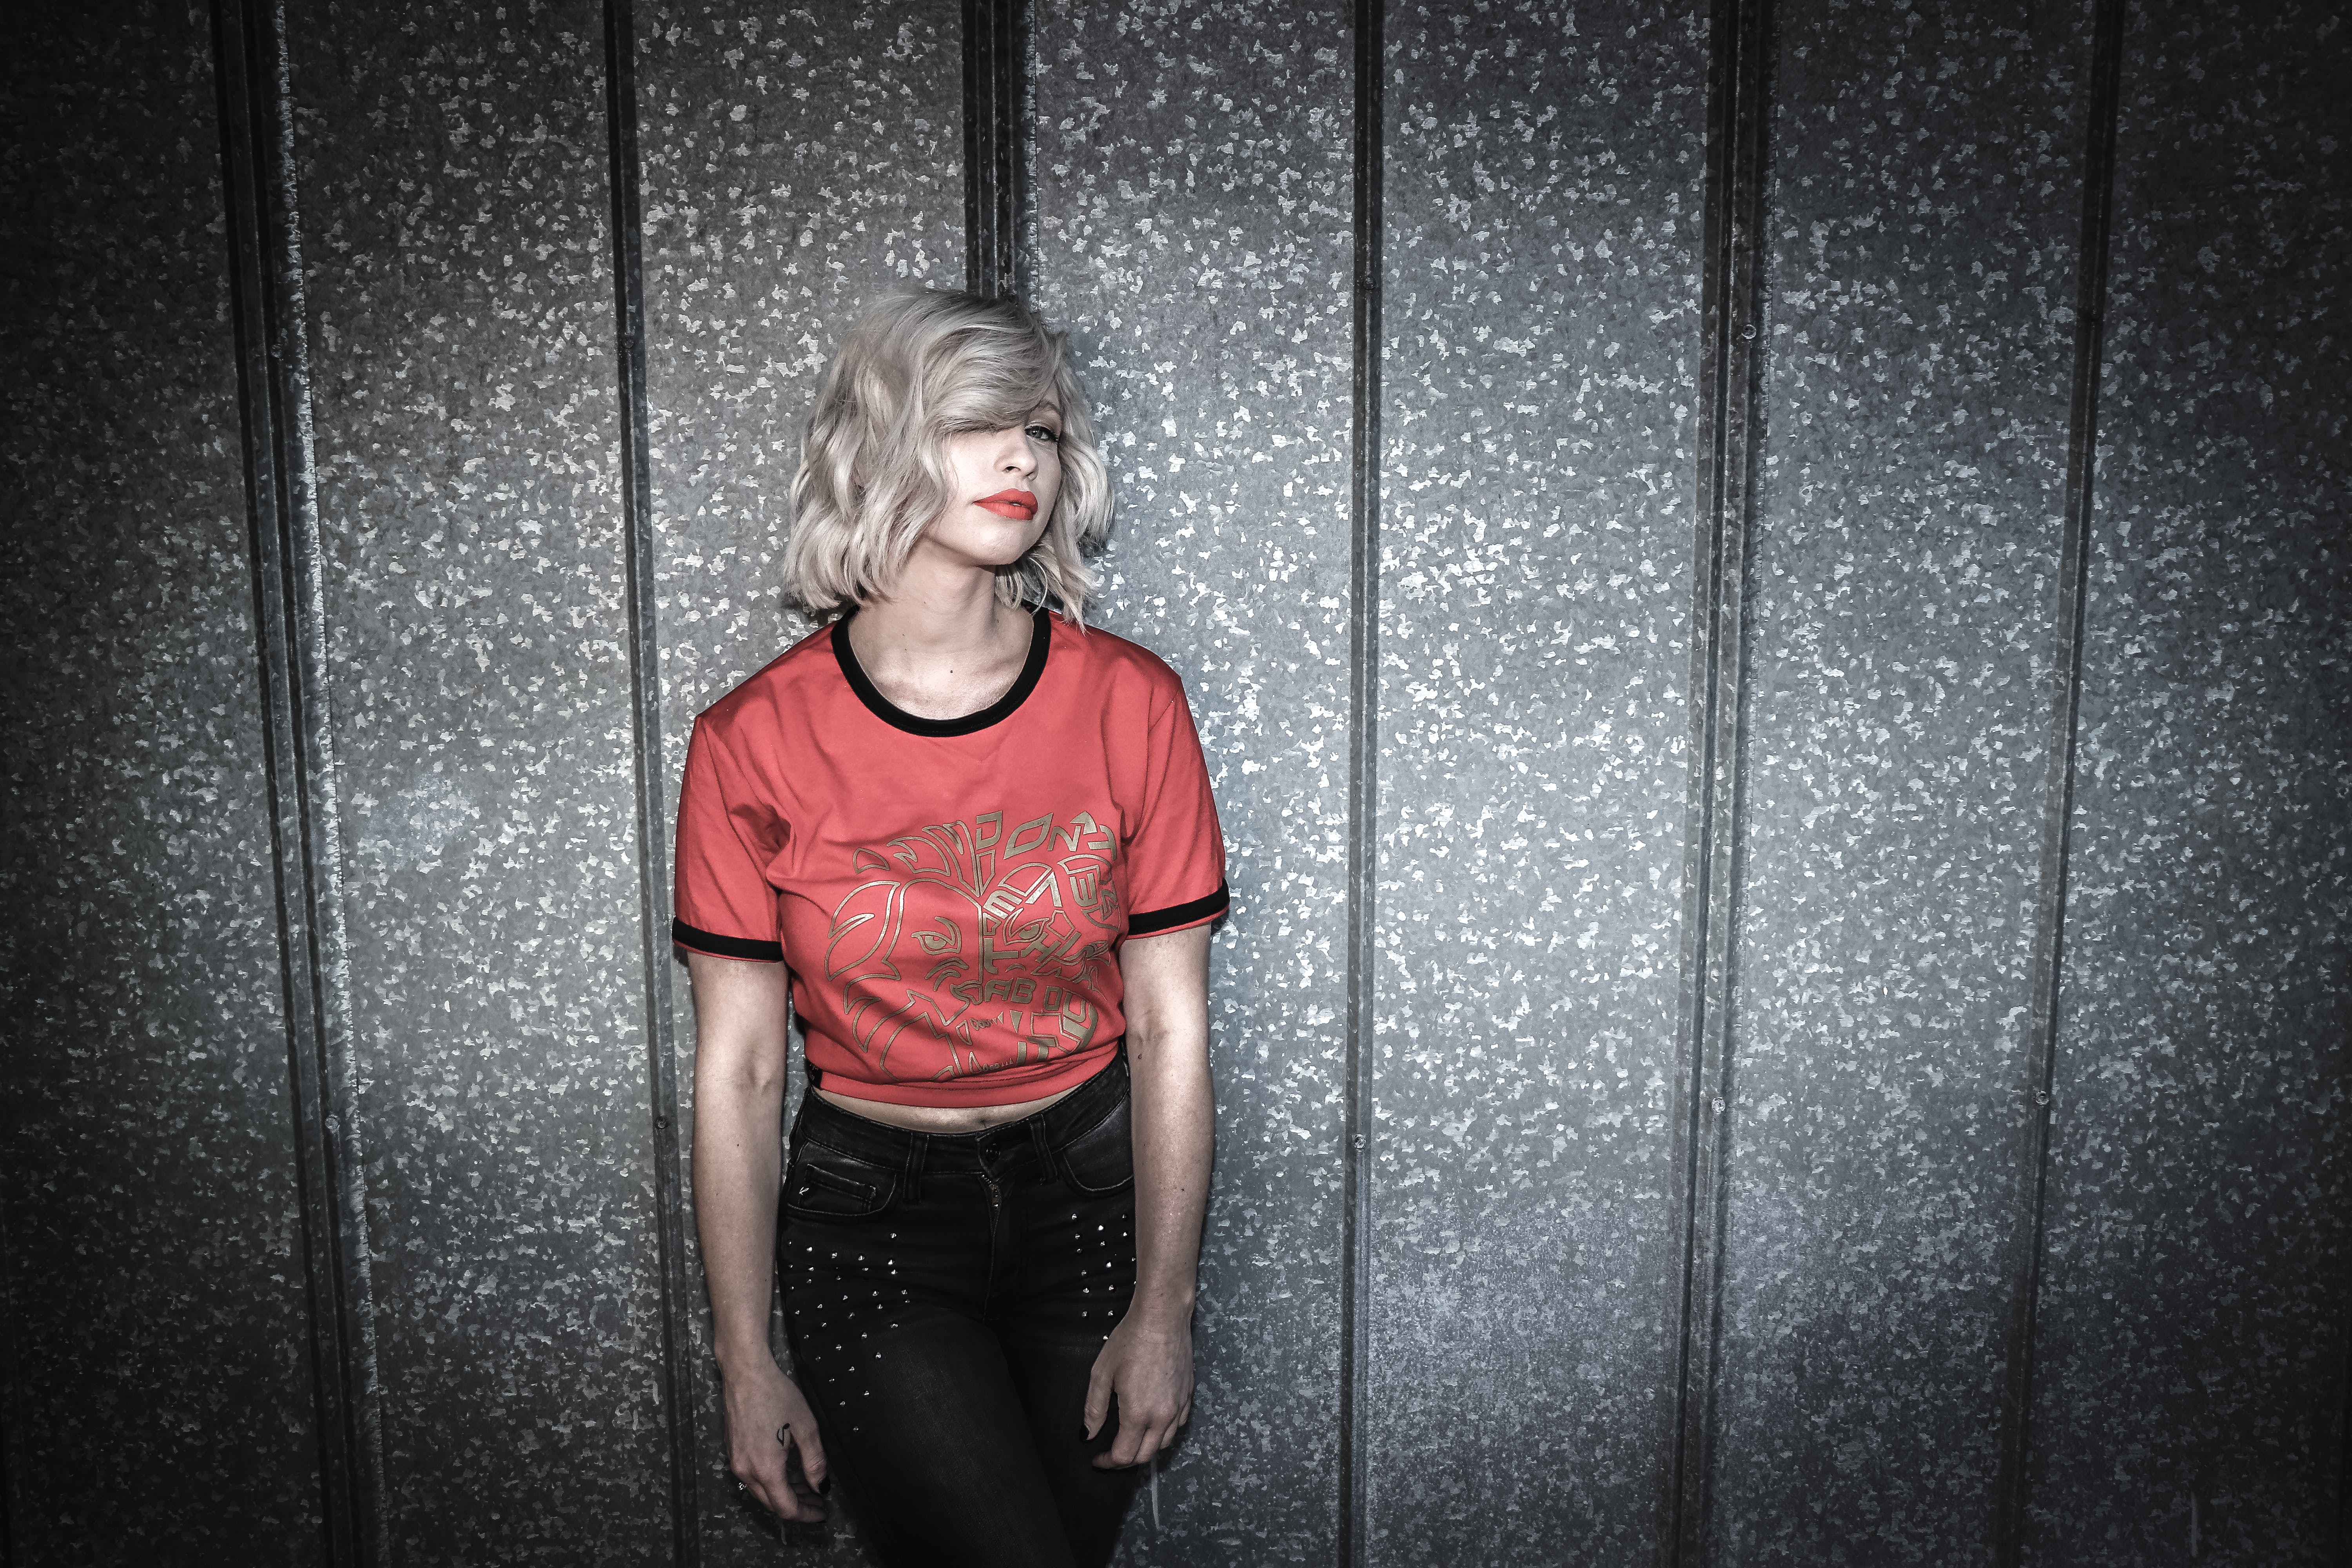 Woman Wearing Red and Black Scoop-neck Shirt and Black Bottoms Leaning on Gray Wall